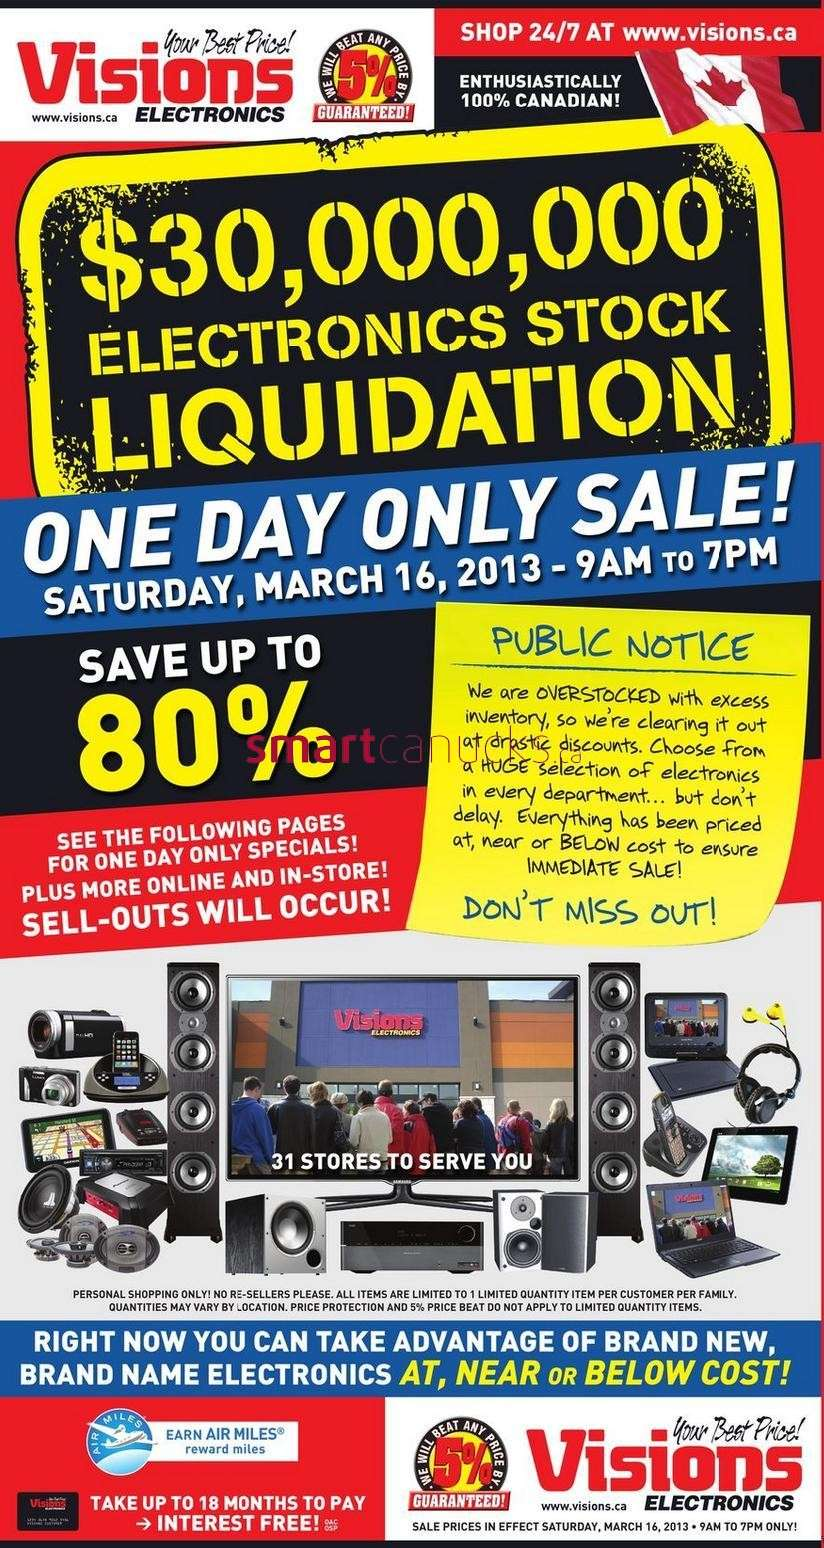 Visions Electronics 1-Day Sale Flyer Mar 16